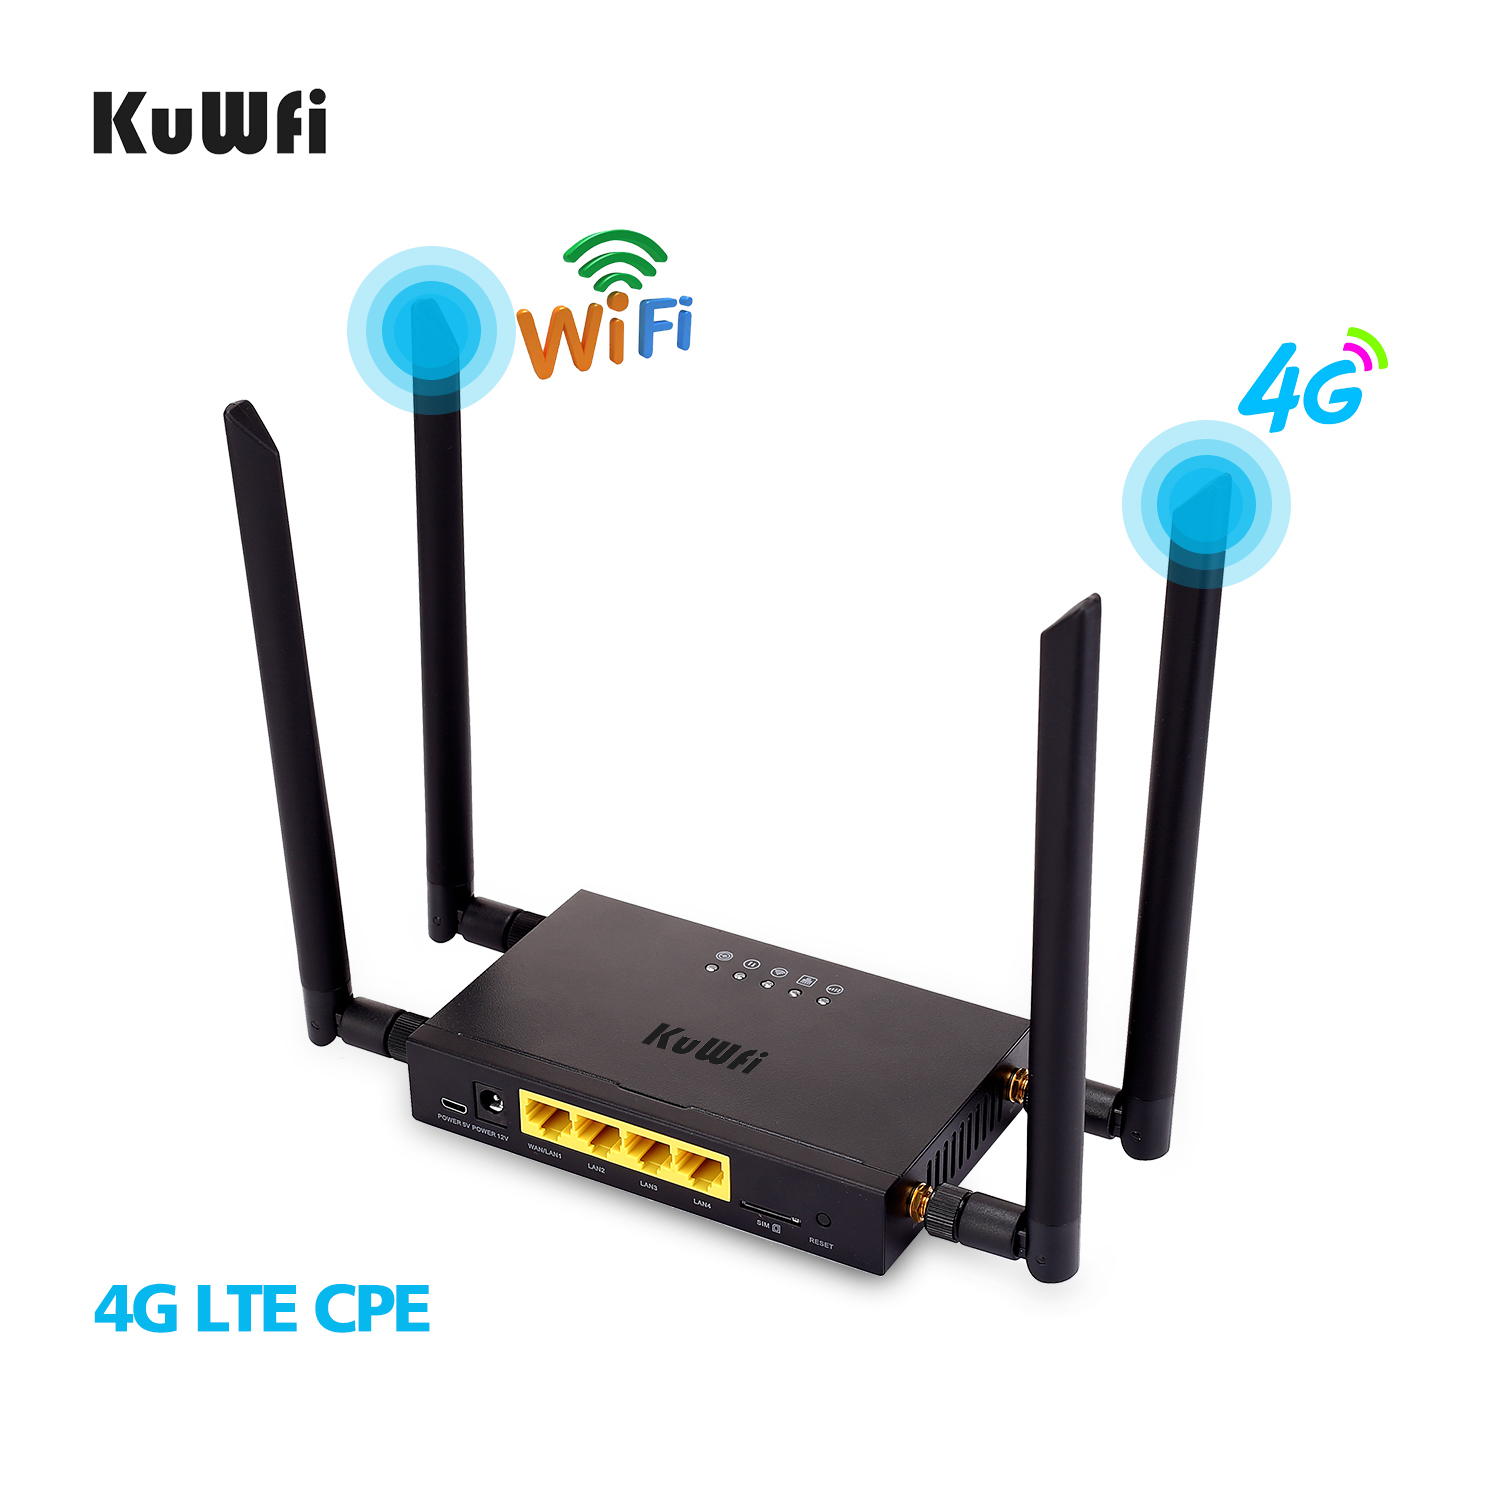 KuWFi 4G LTE WiFi Wireless Router 300Mbps Cat 4 High Speed Wifi CPE With SIM Card Slot And 4pcs External Antennas UP To 32 Users